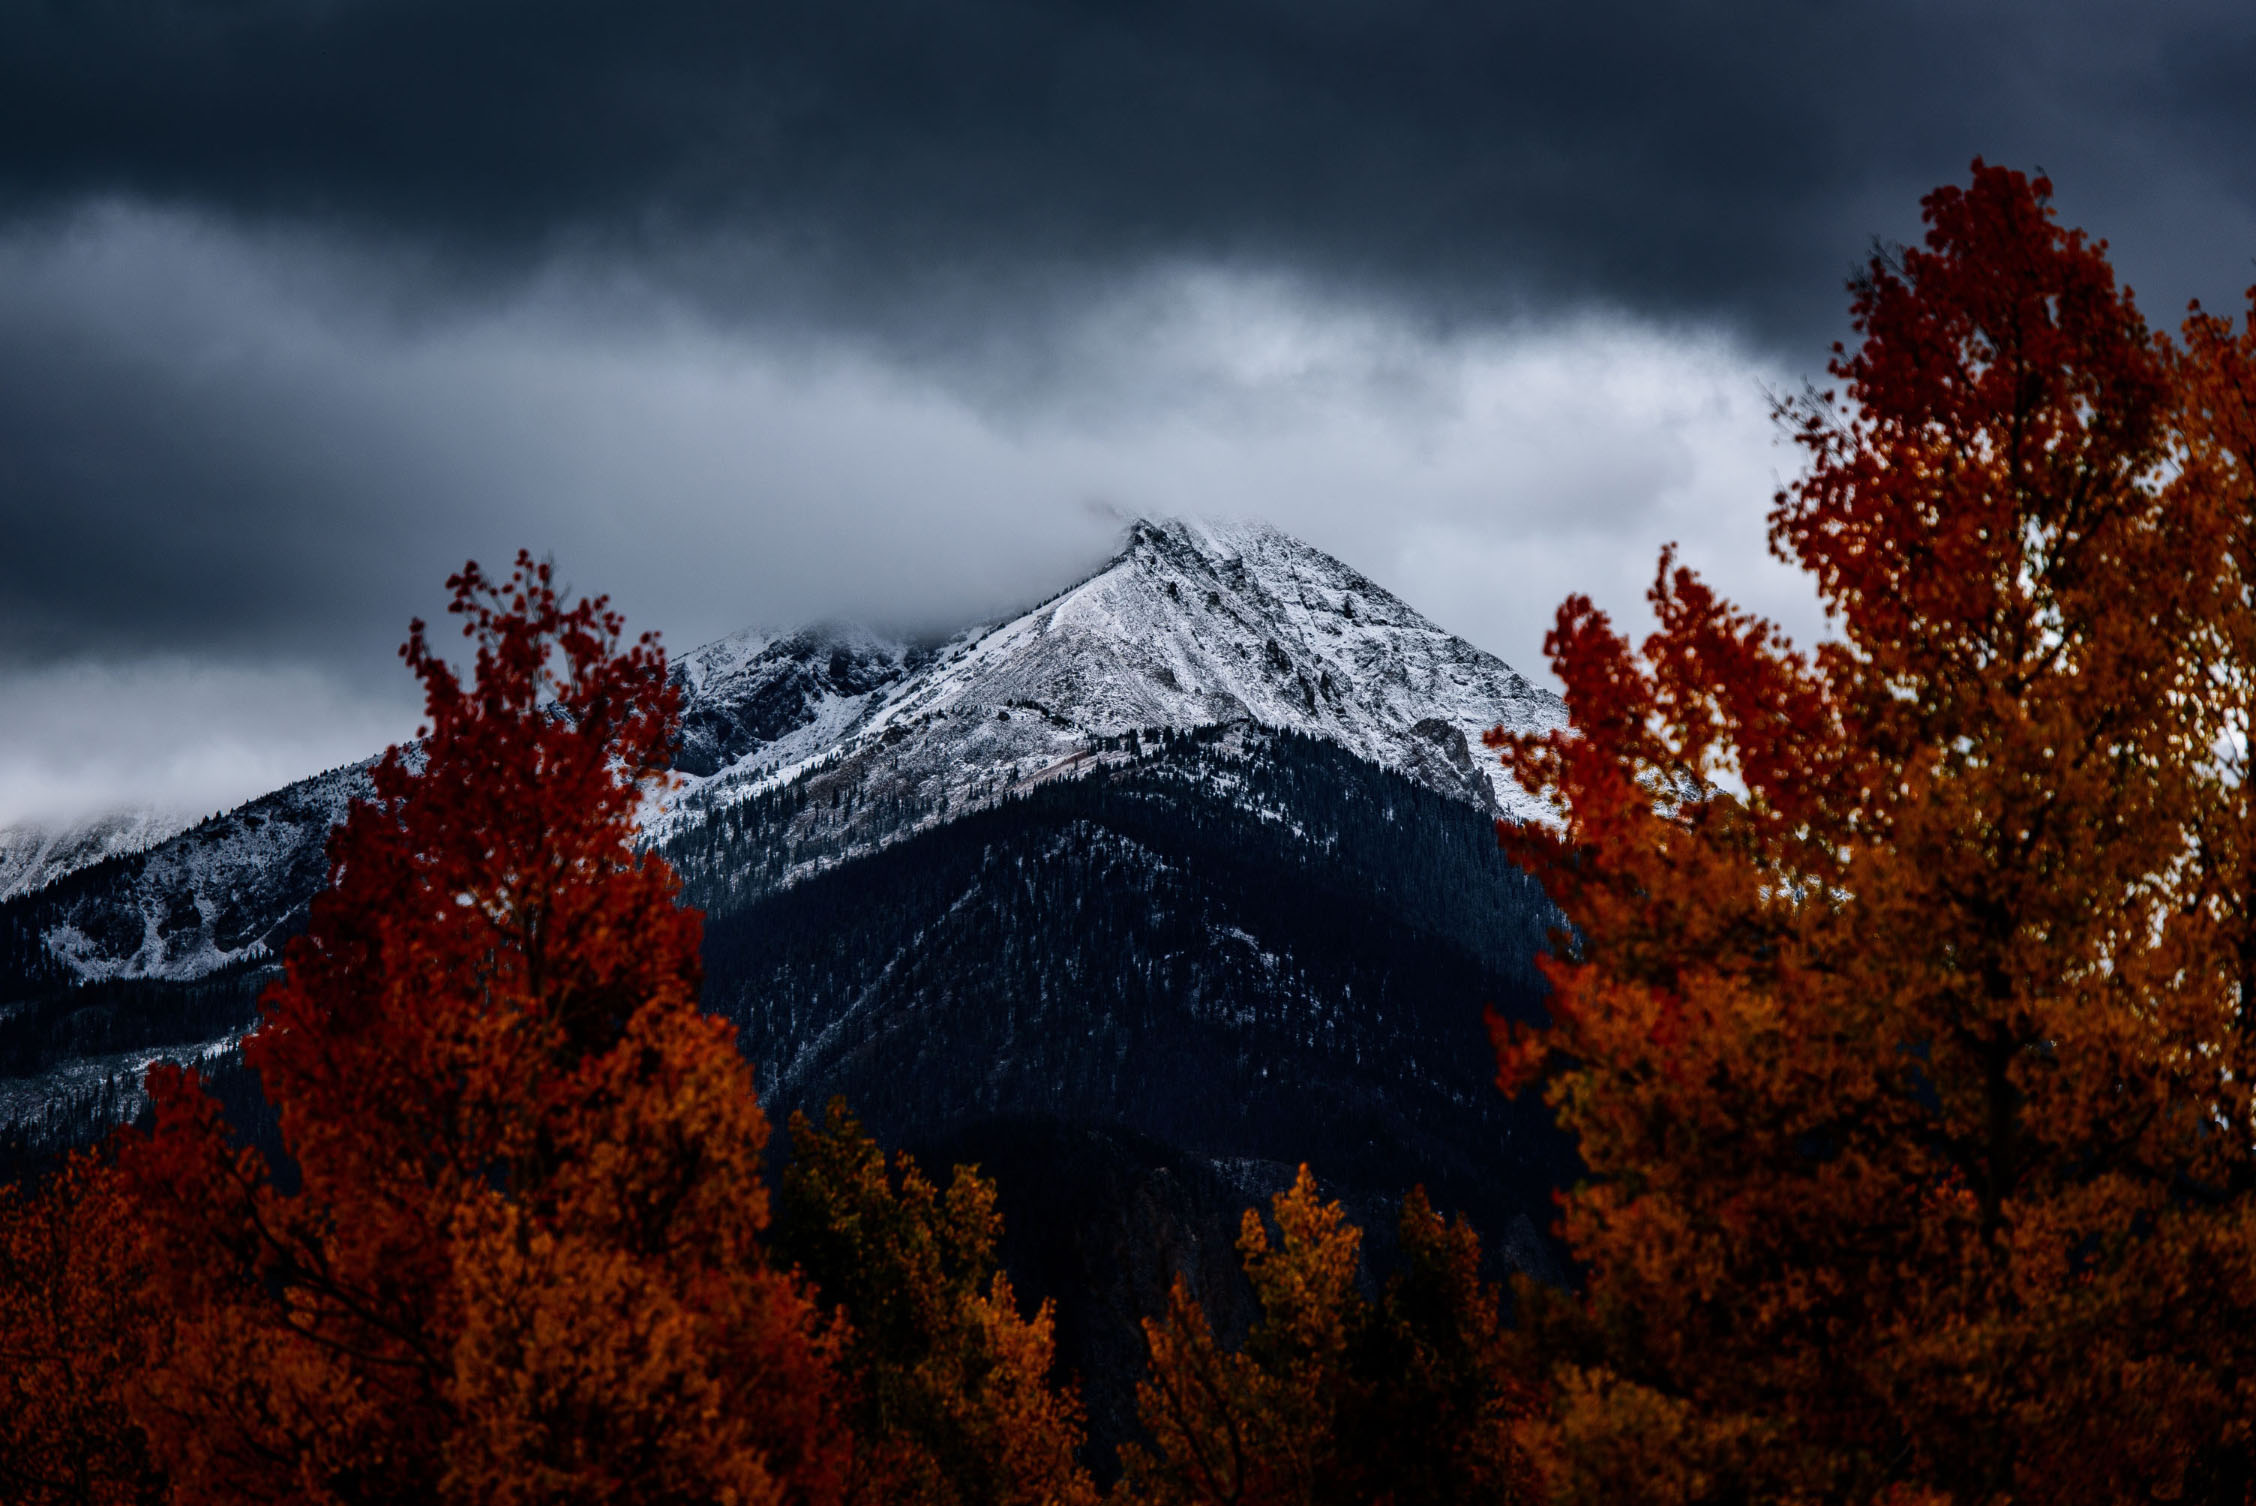 Fall trees with snowy mountains